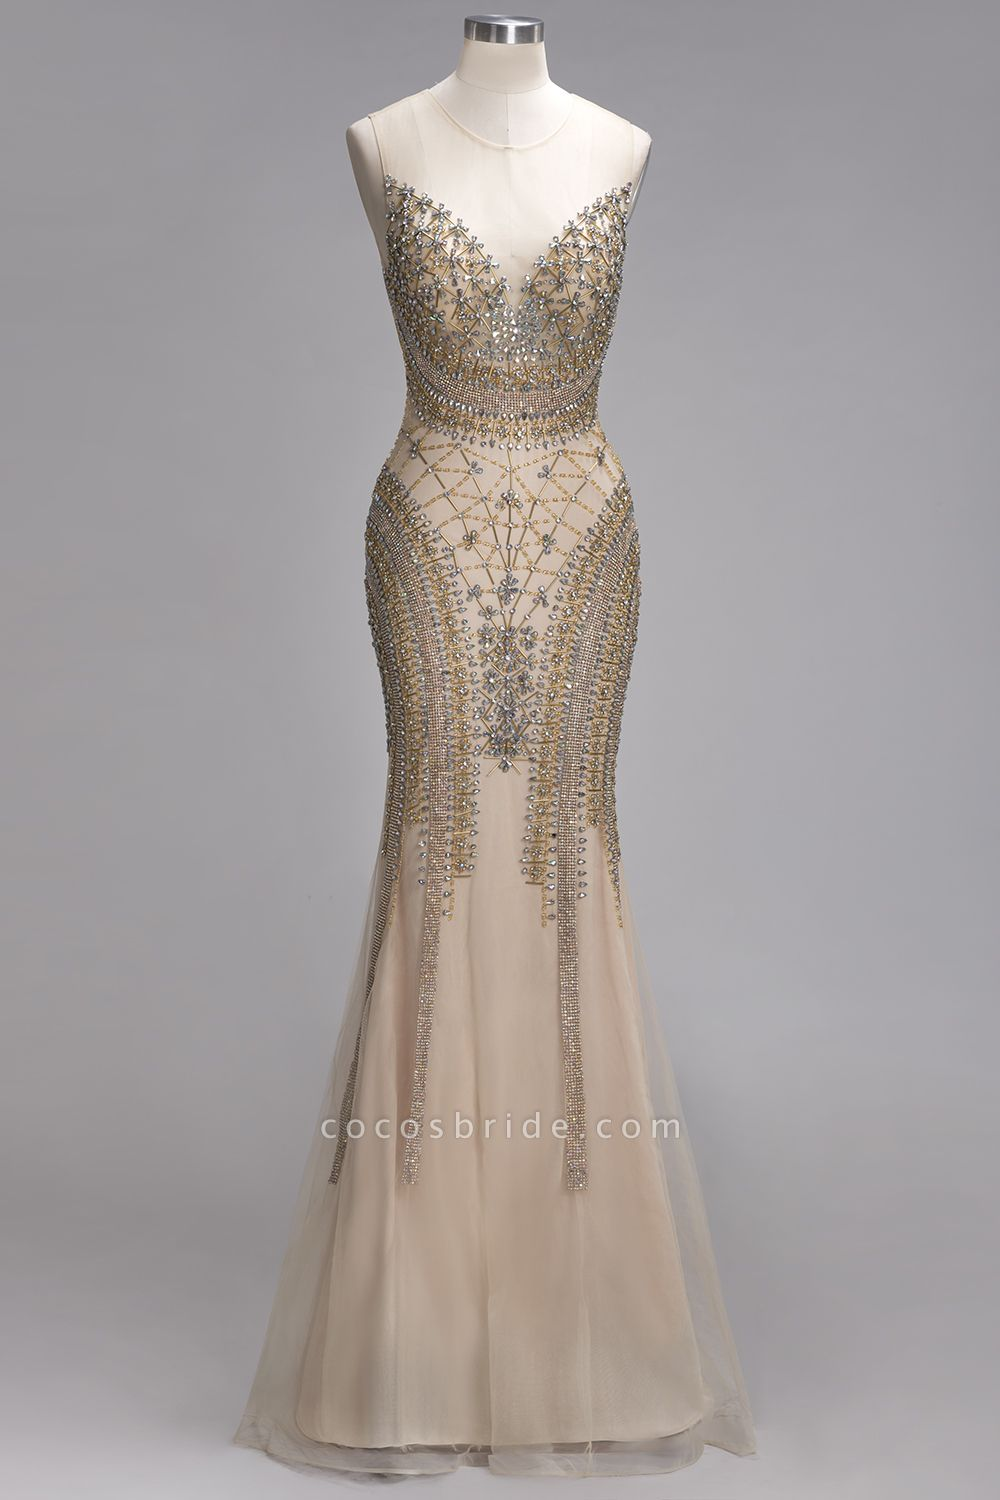 PRISCILLA | Mermaid Sleeveless Floor Length Backless Prom Dresses with Crystals Beading